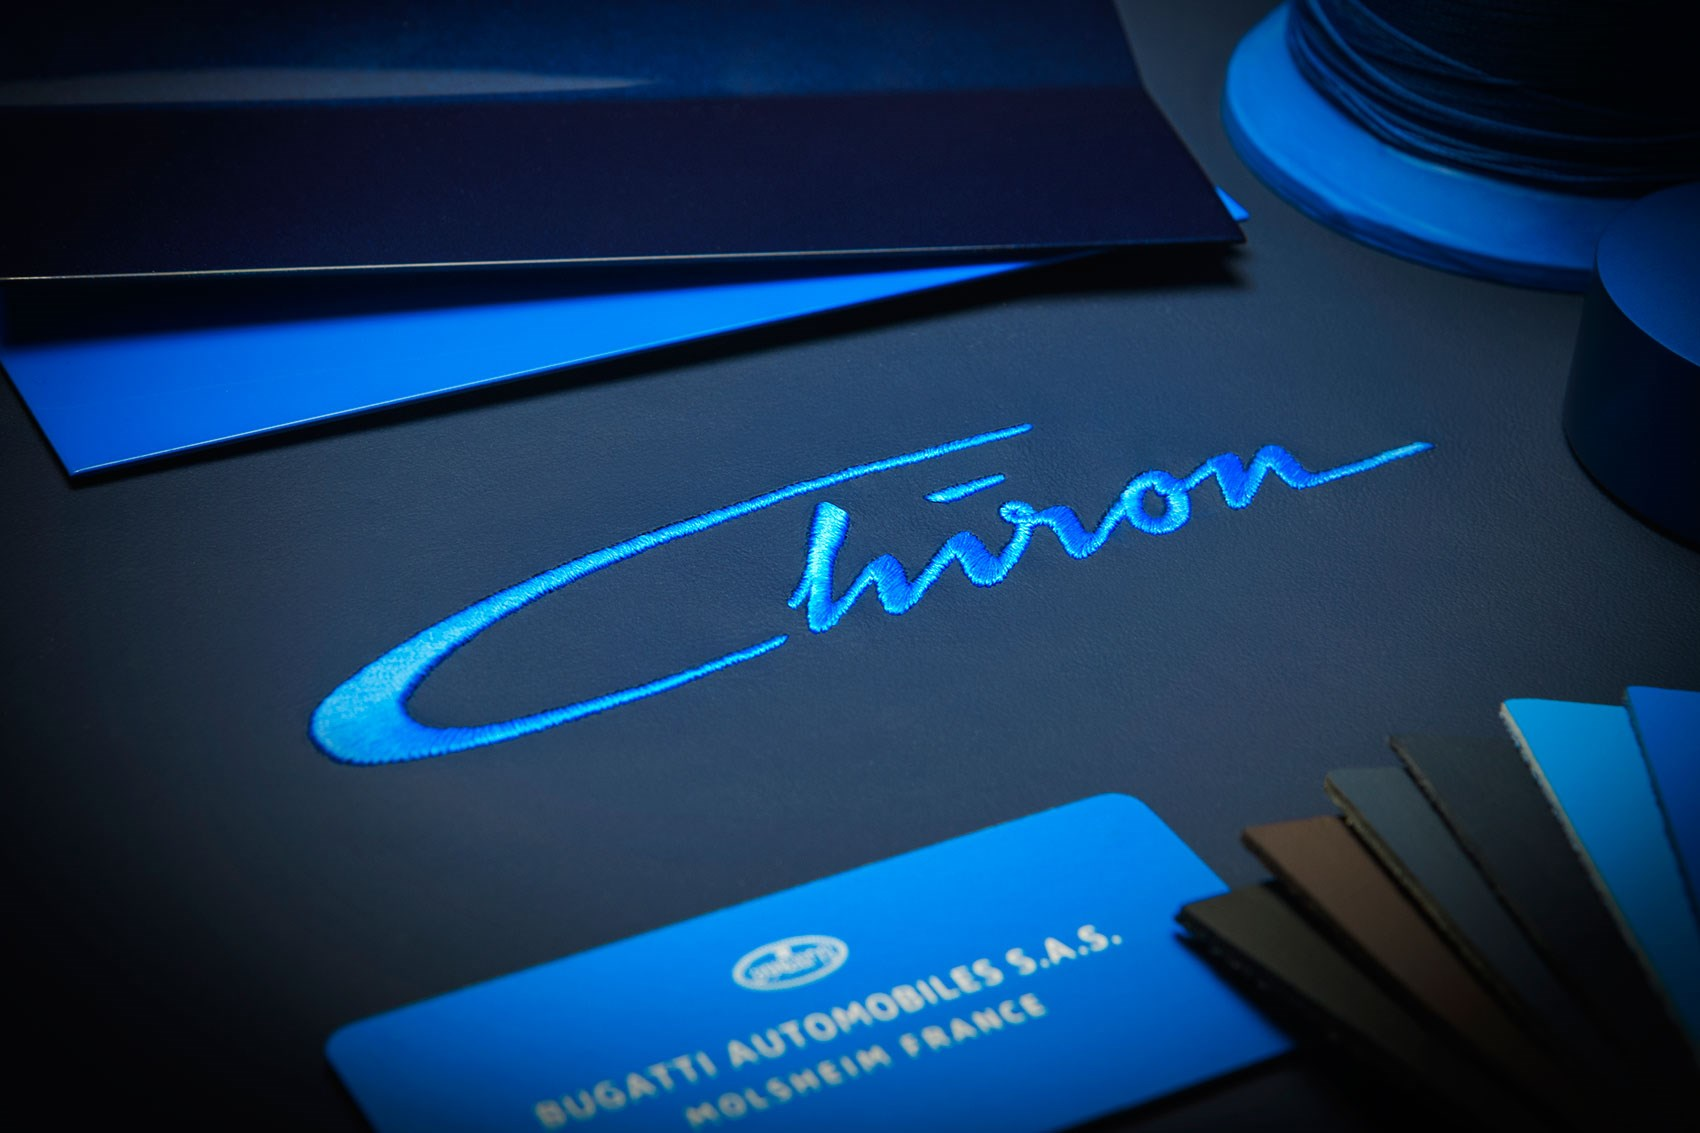 Bugatti is go! New Chiron name confirmed, here at Geneva 2016